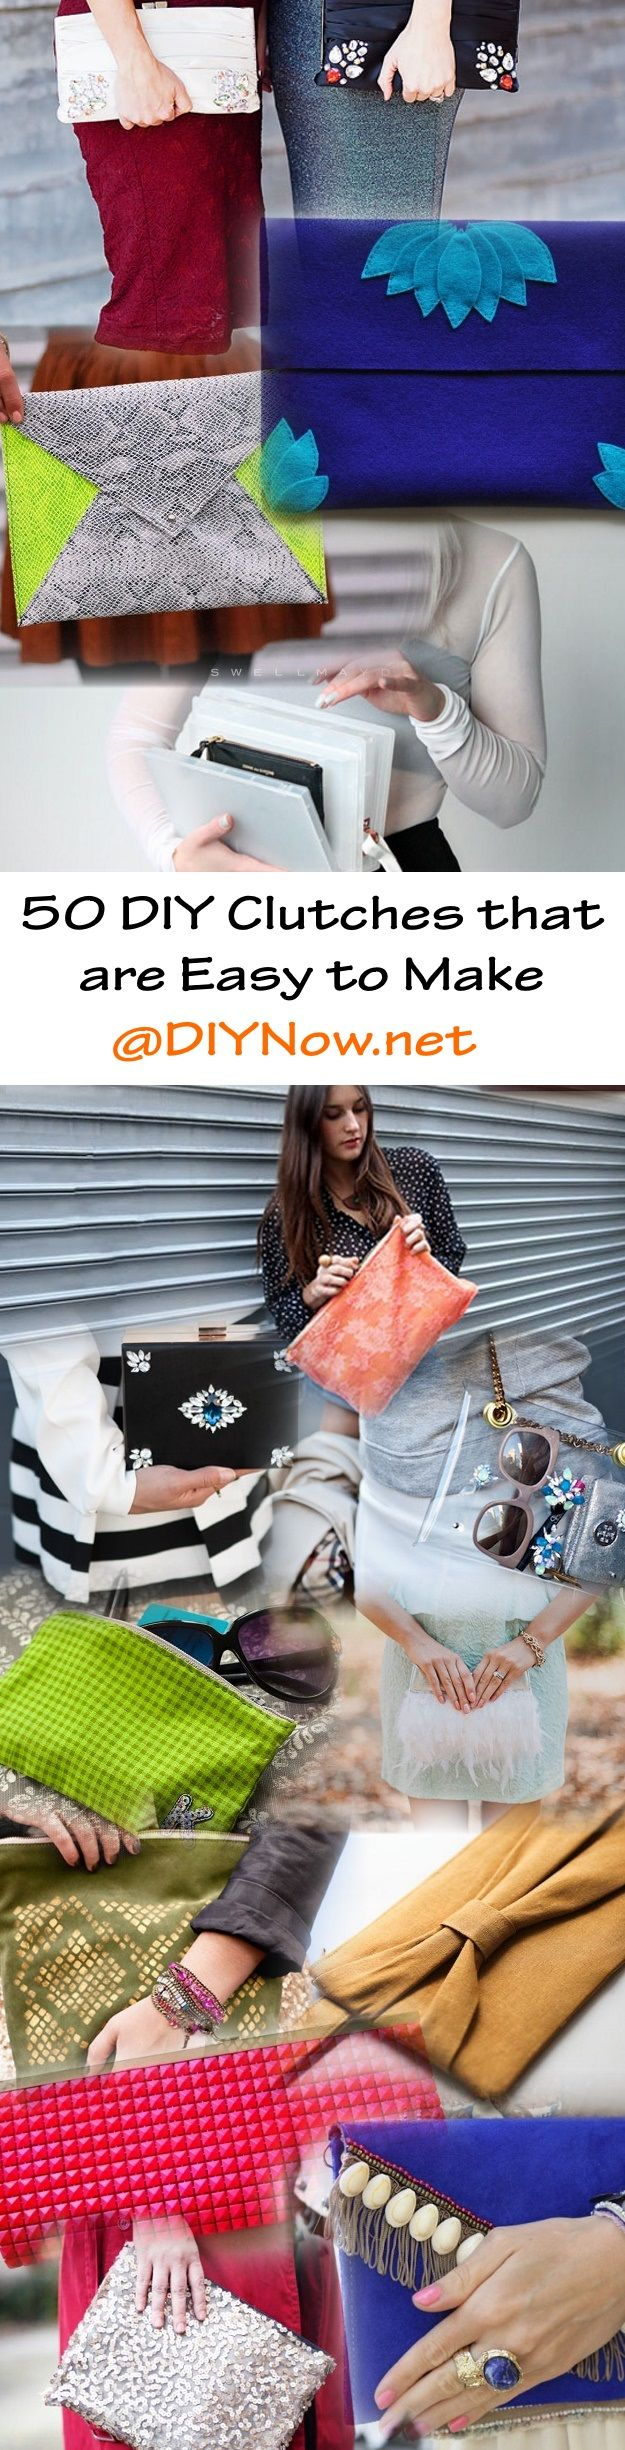 50 DIY Clutches that are Easy to Make